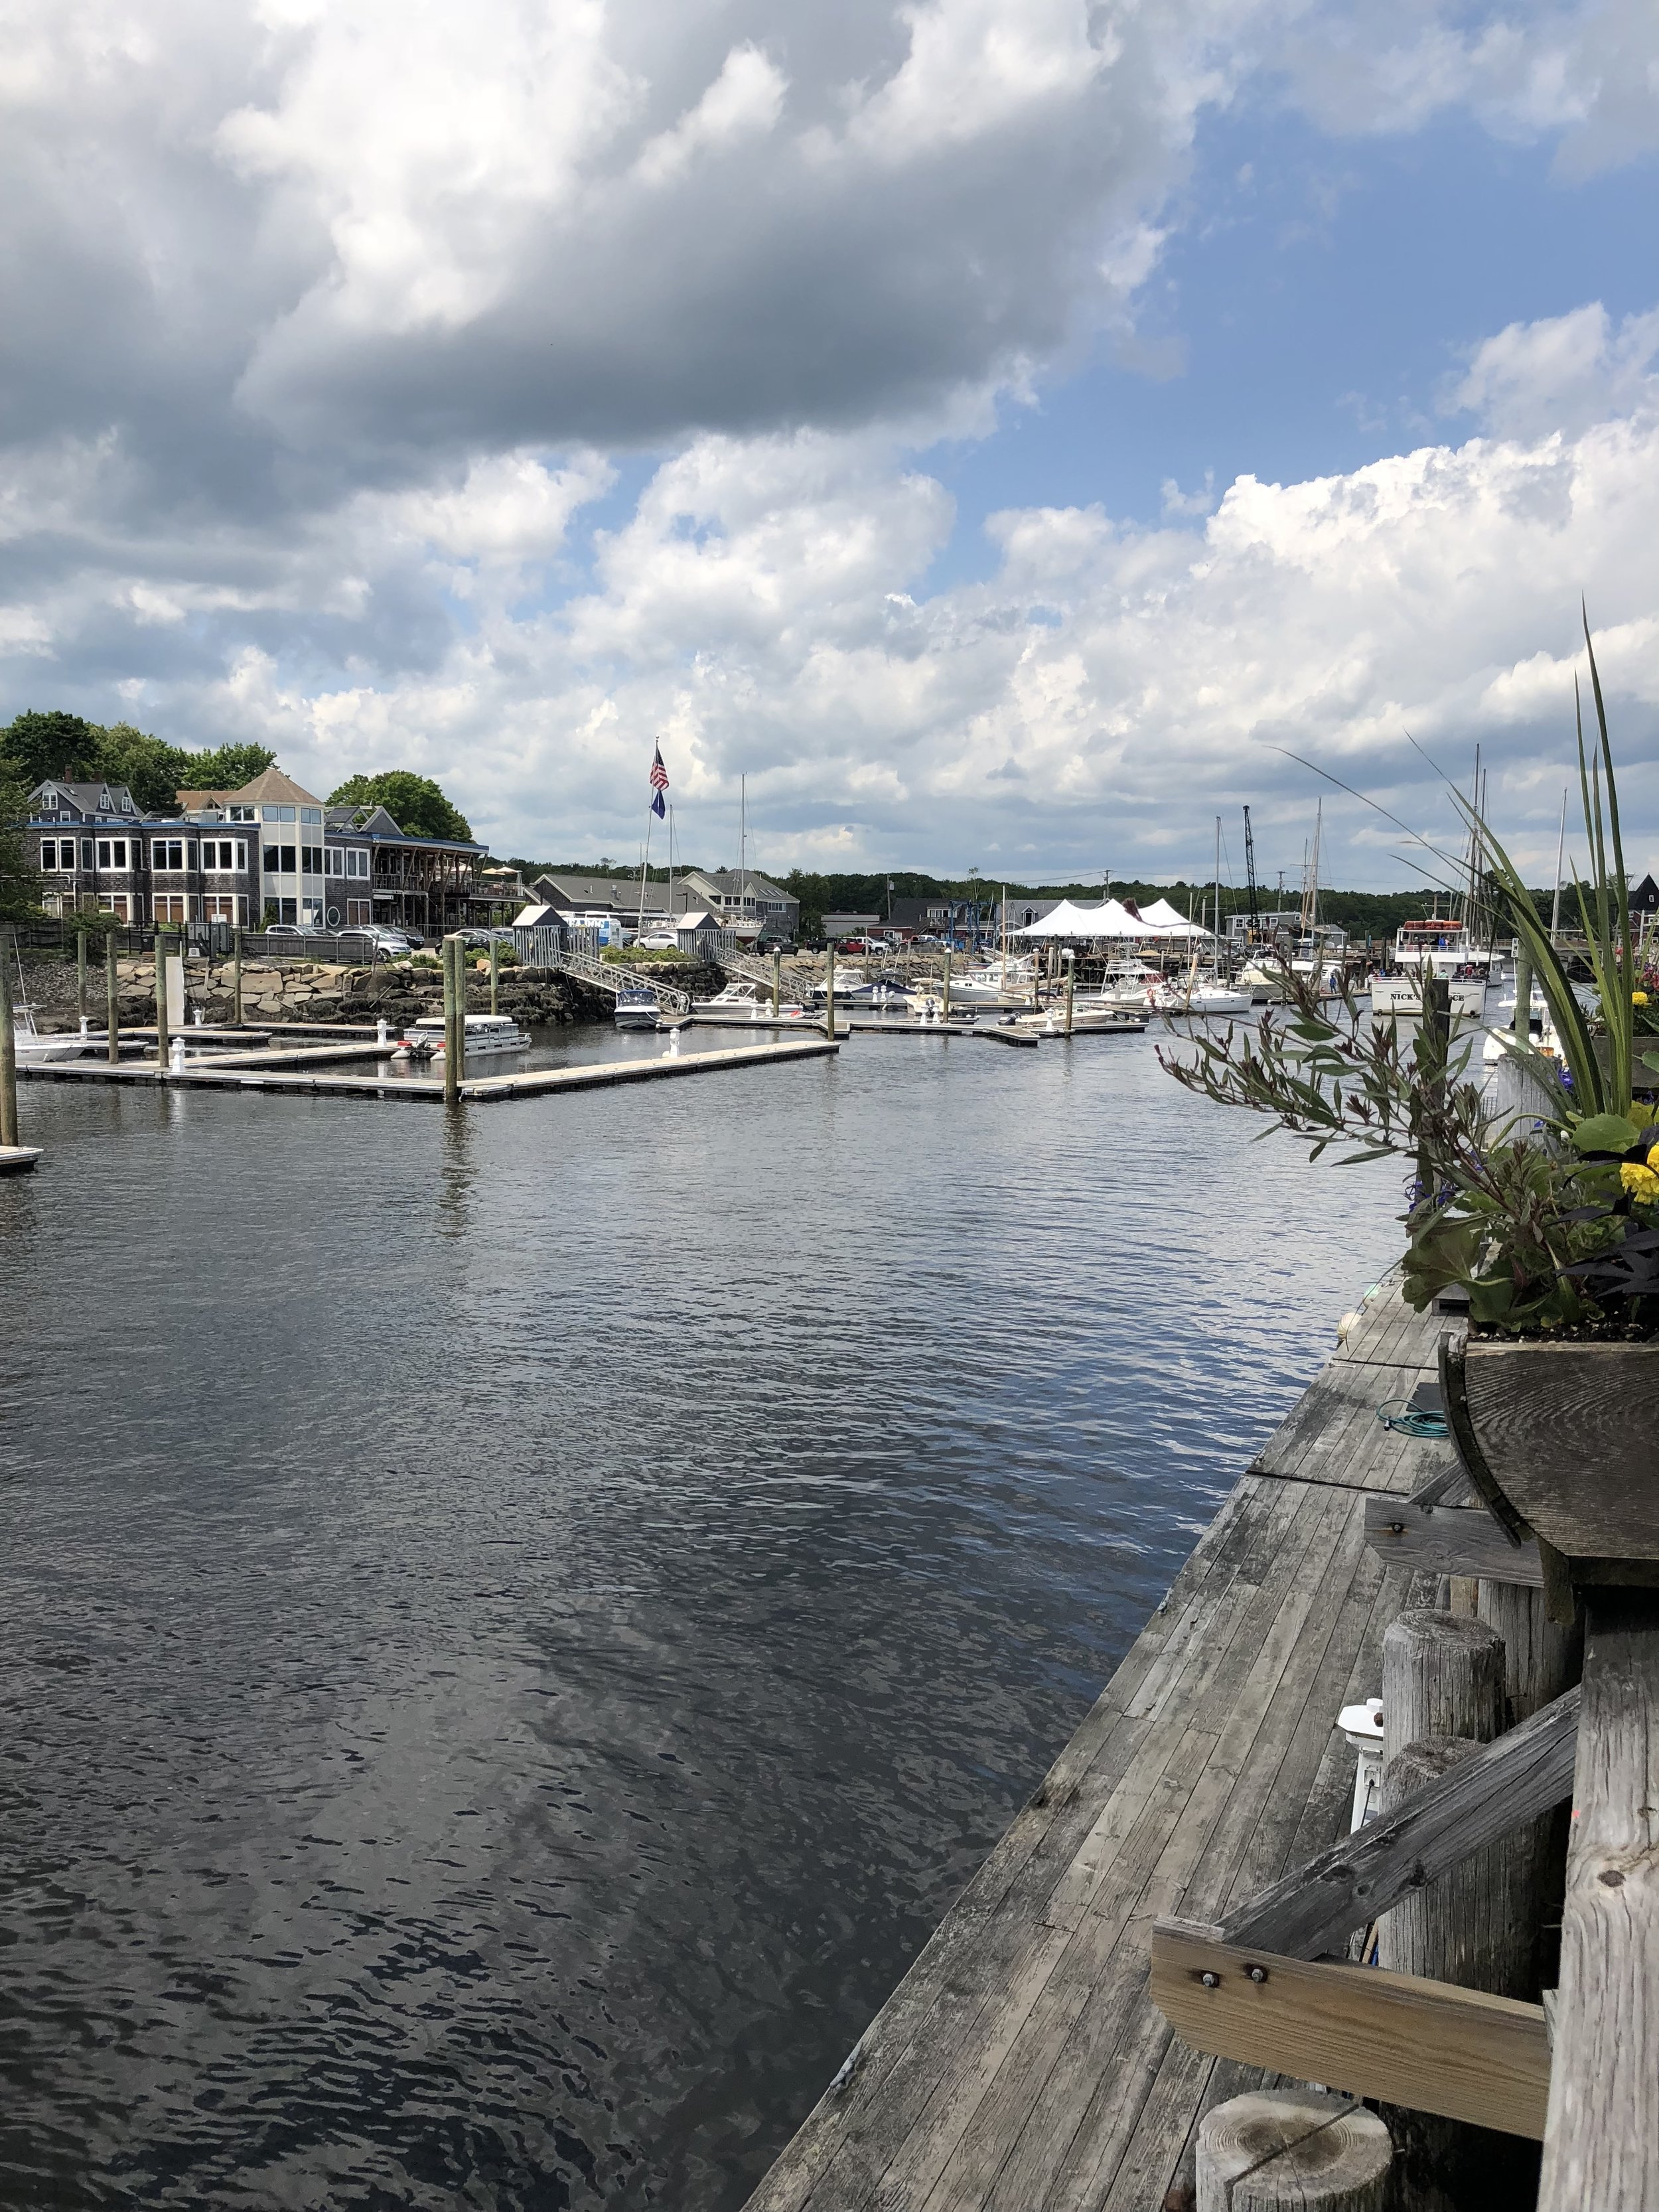 View from Arundel Wharf in Kennebunkport on way to Acadia